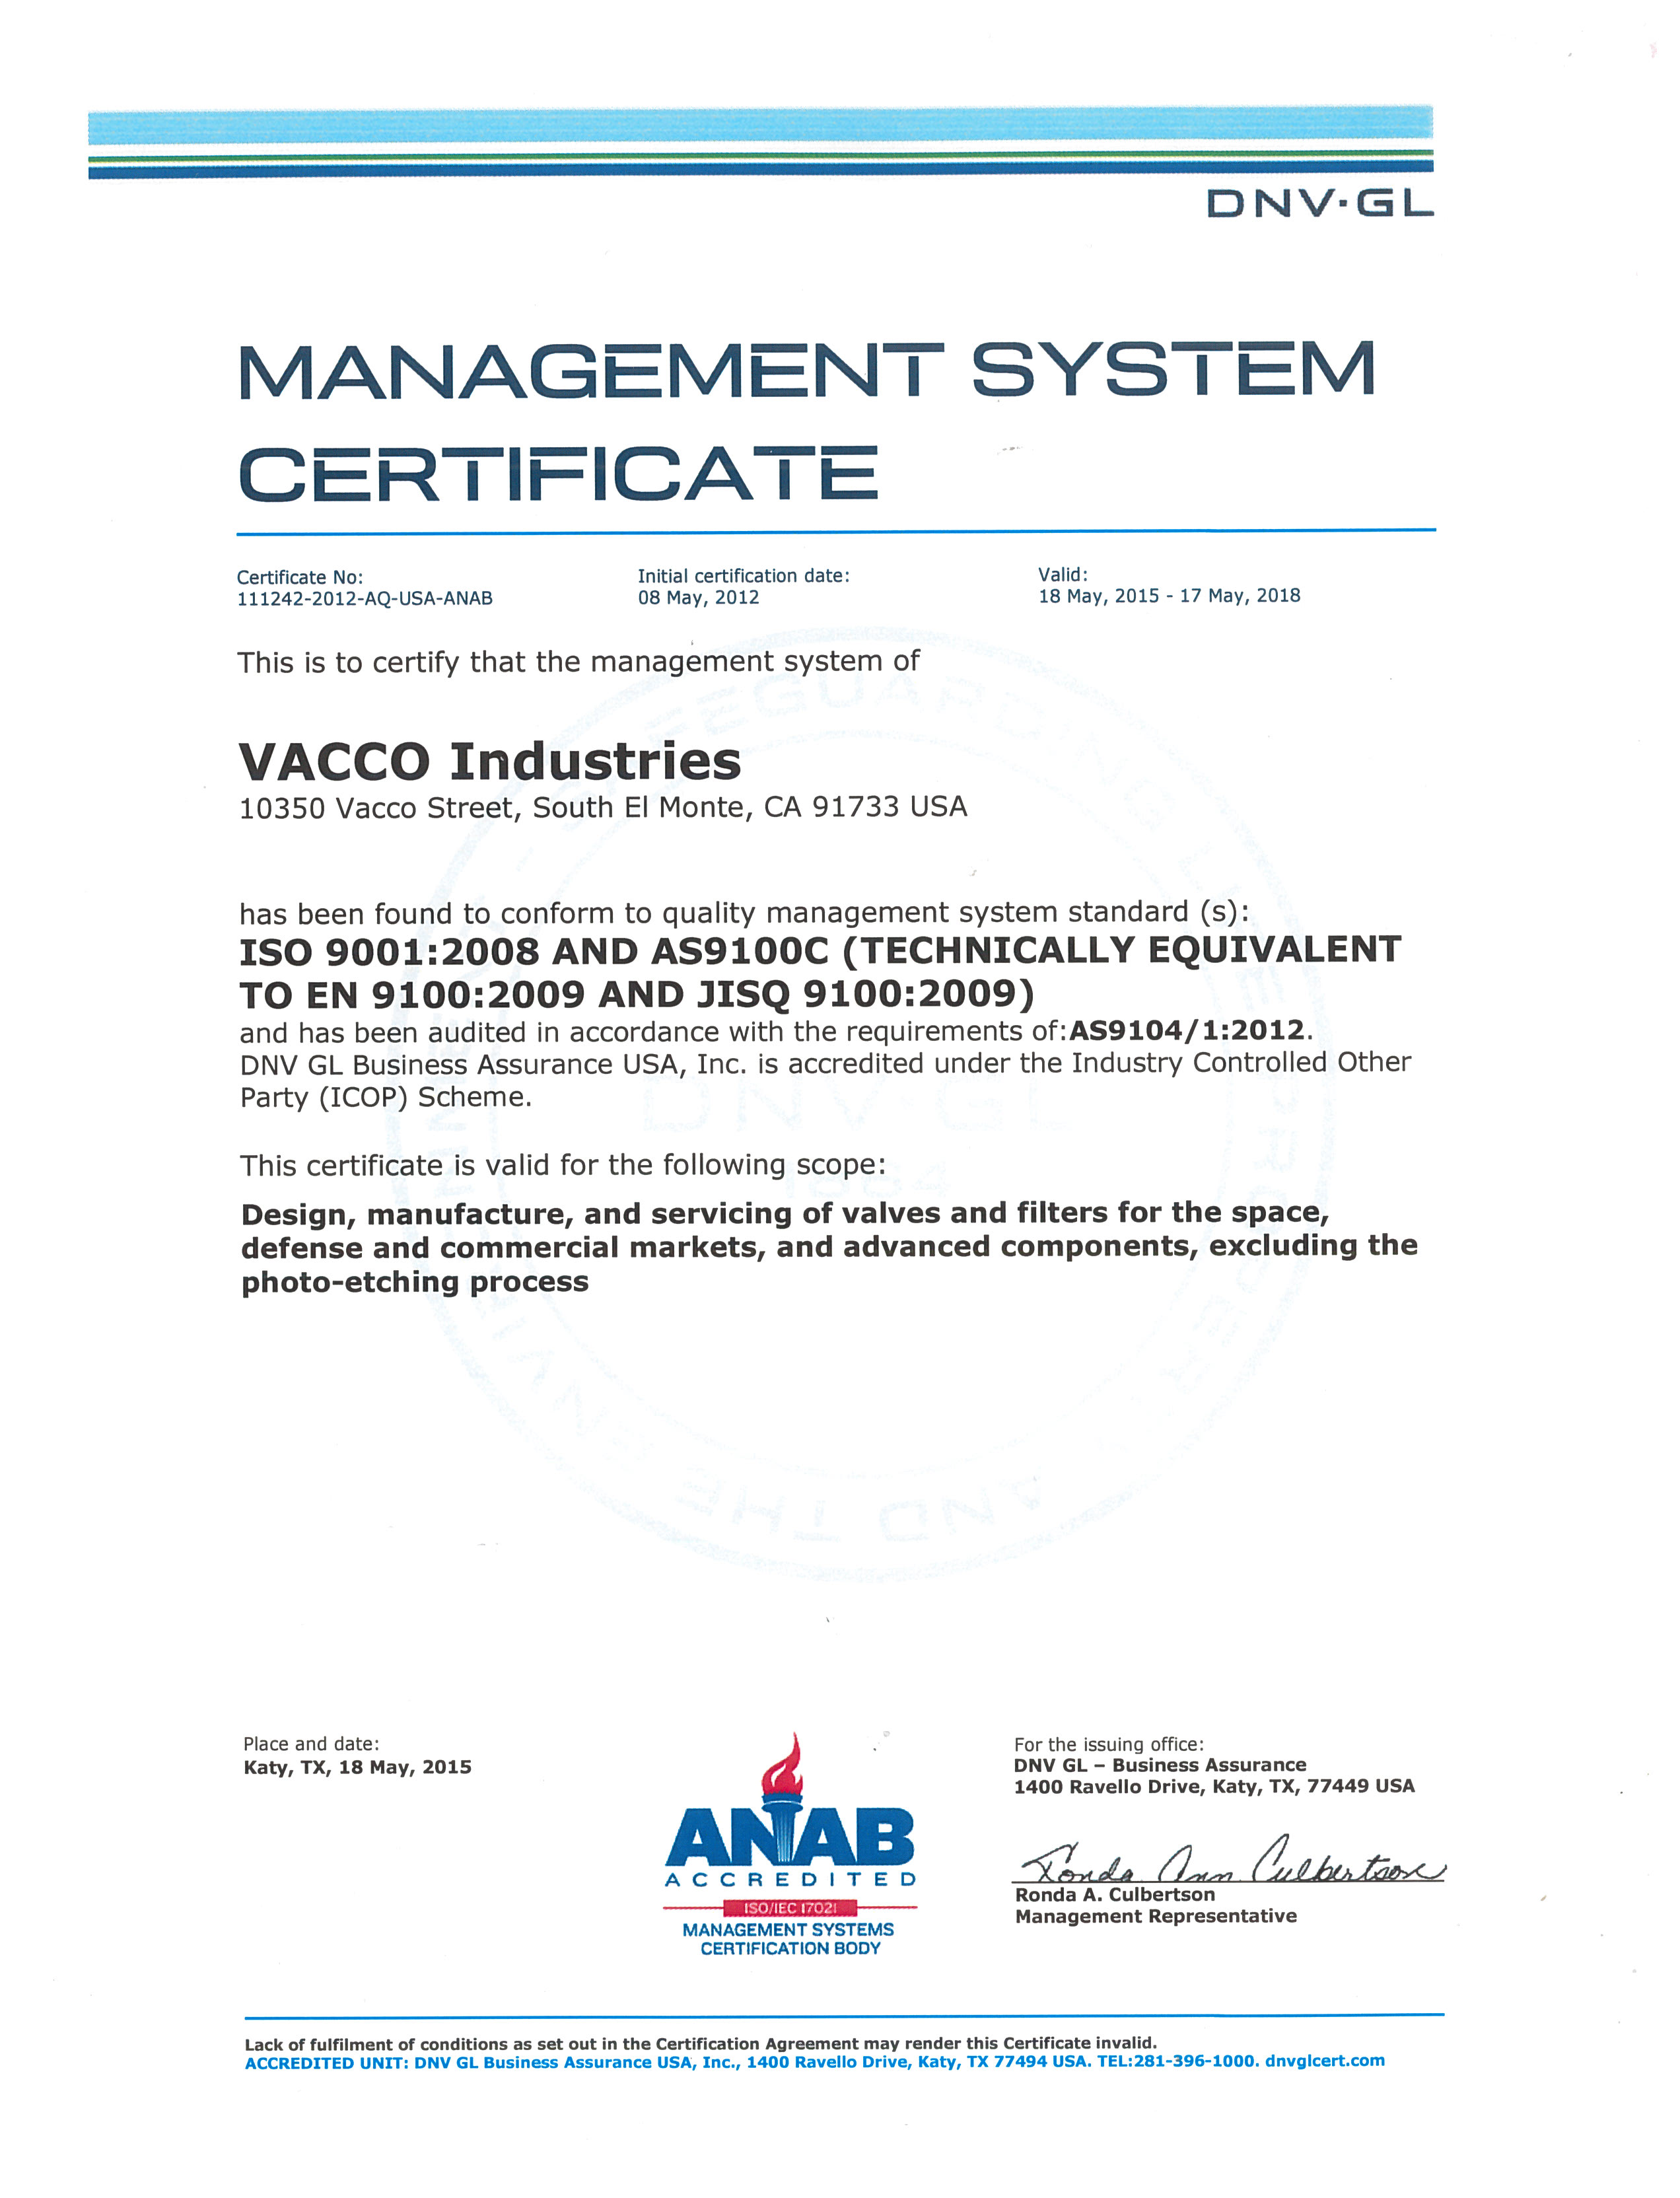 Vacco about quality assurance quality certificate iso 90012008 and as9100c 1betcityfo Image collections